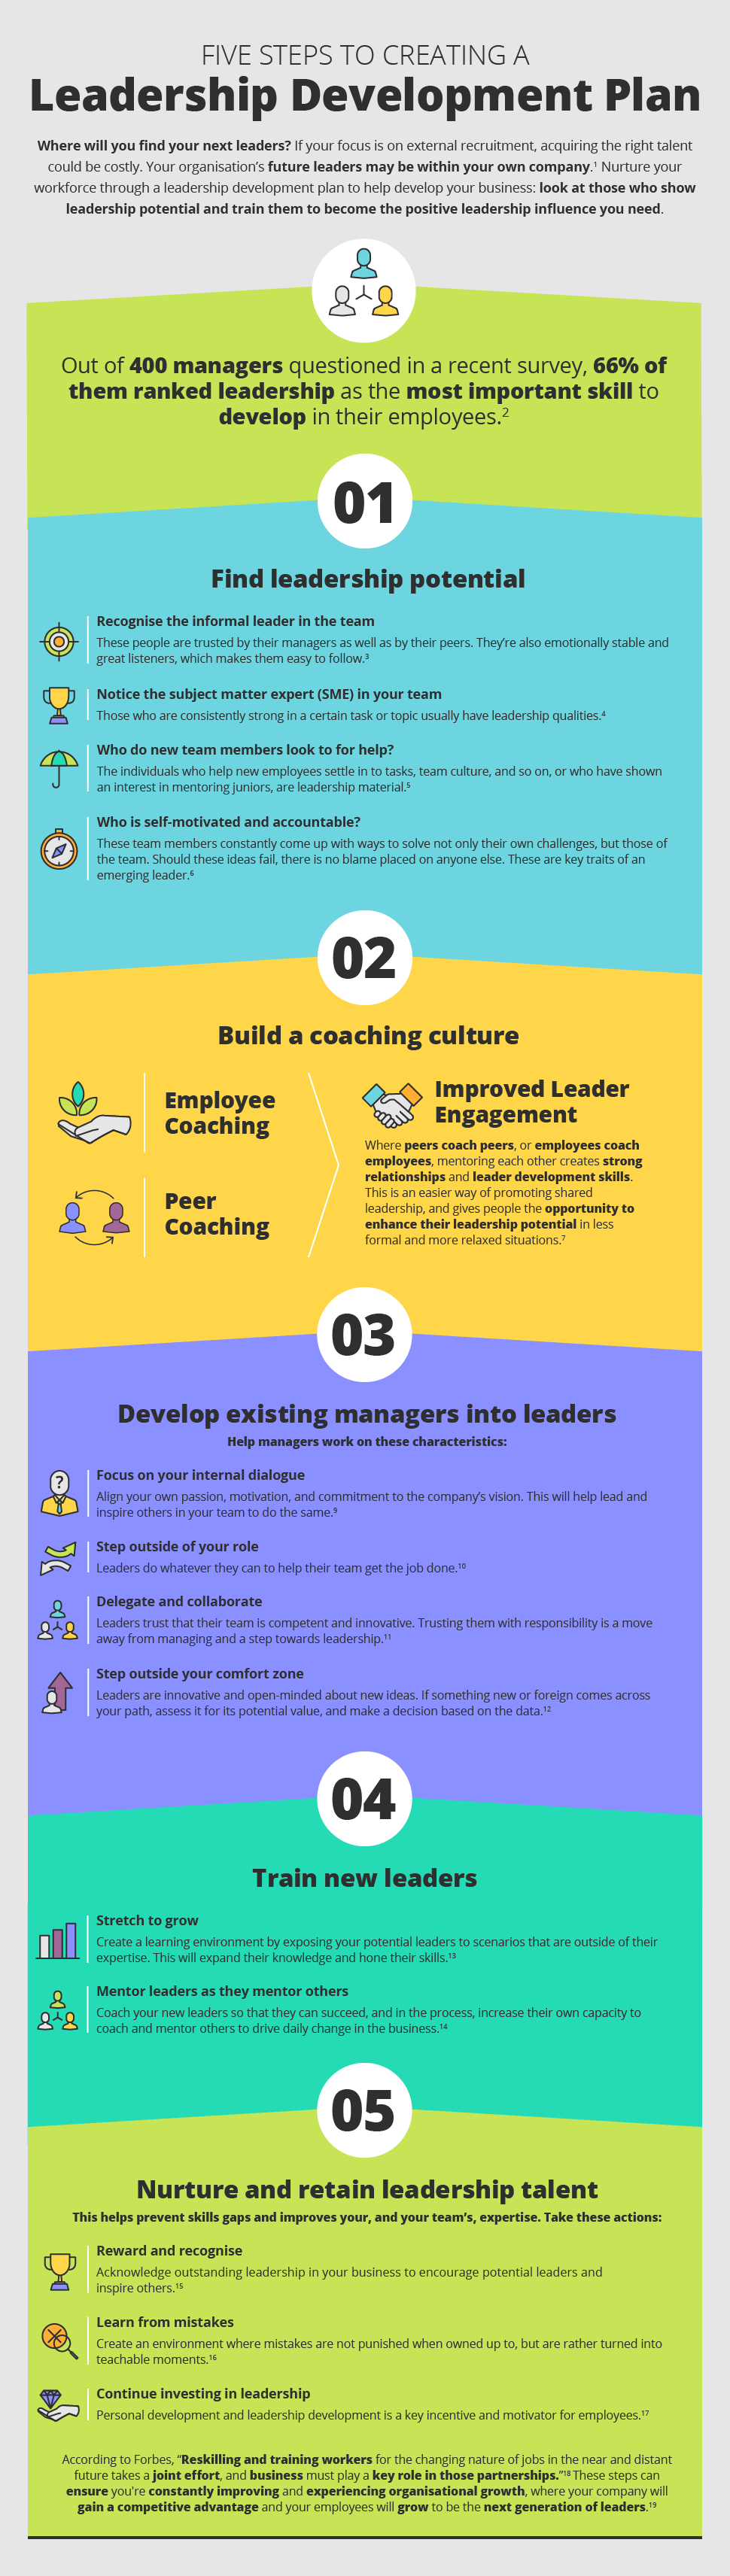 Five Steps to Creating a Leadership Development Plan